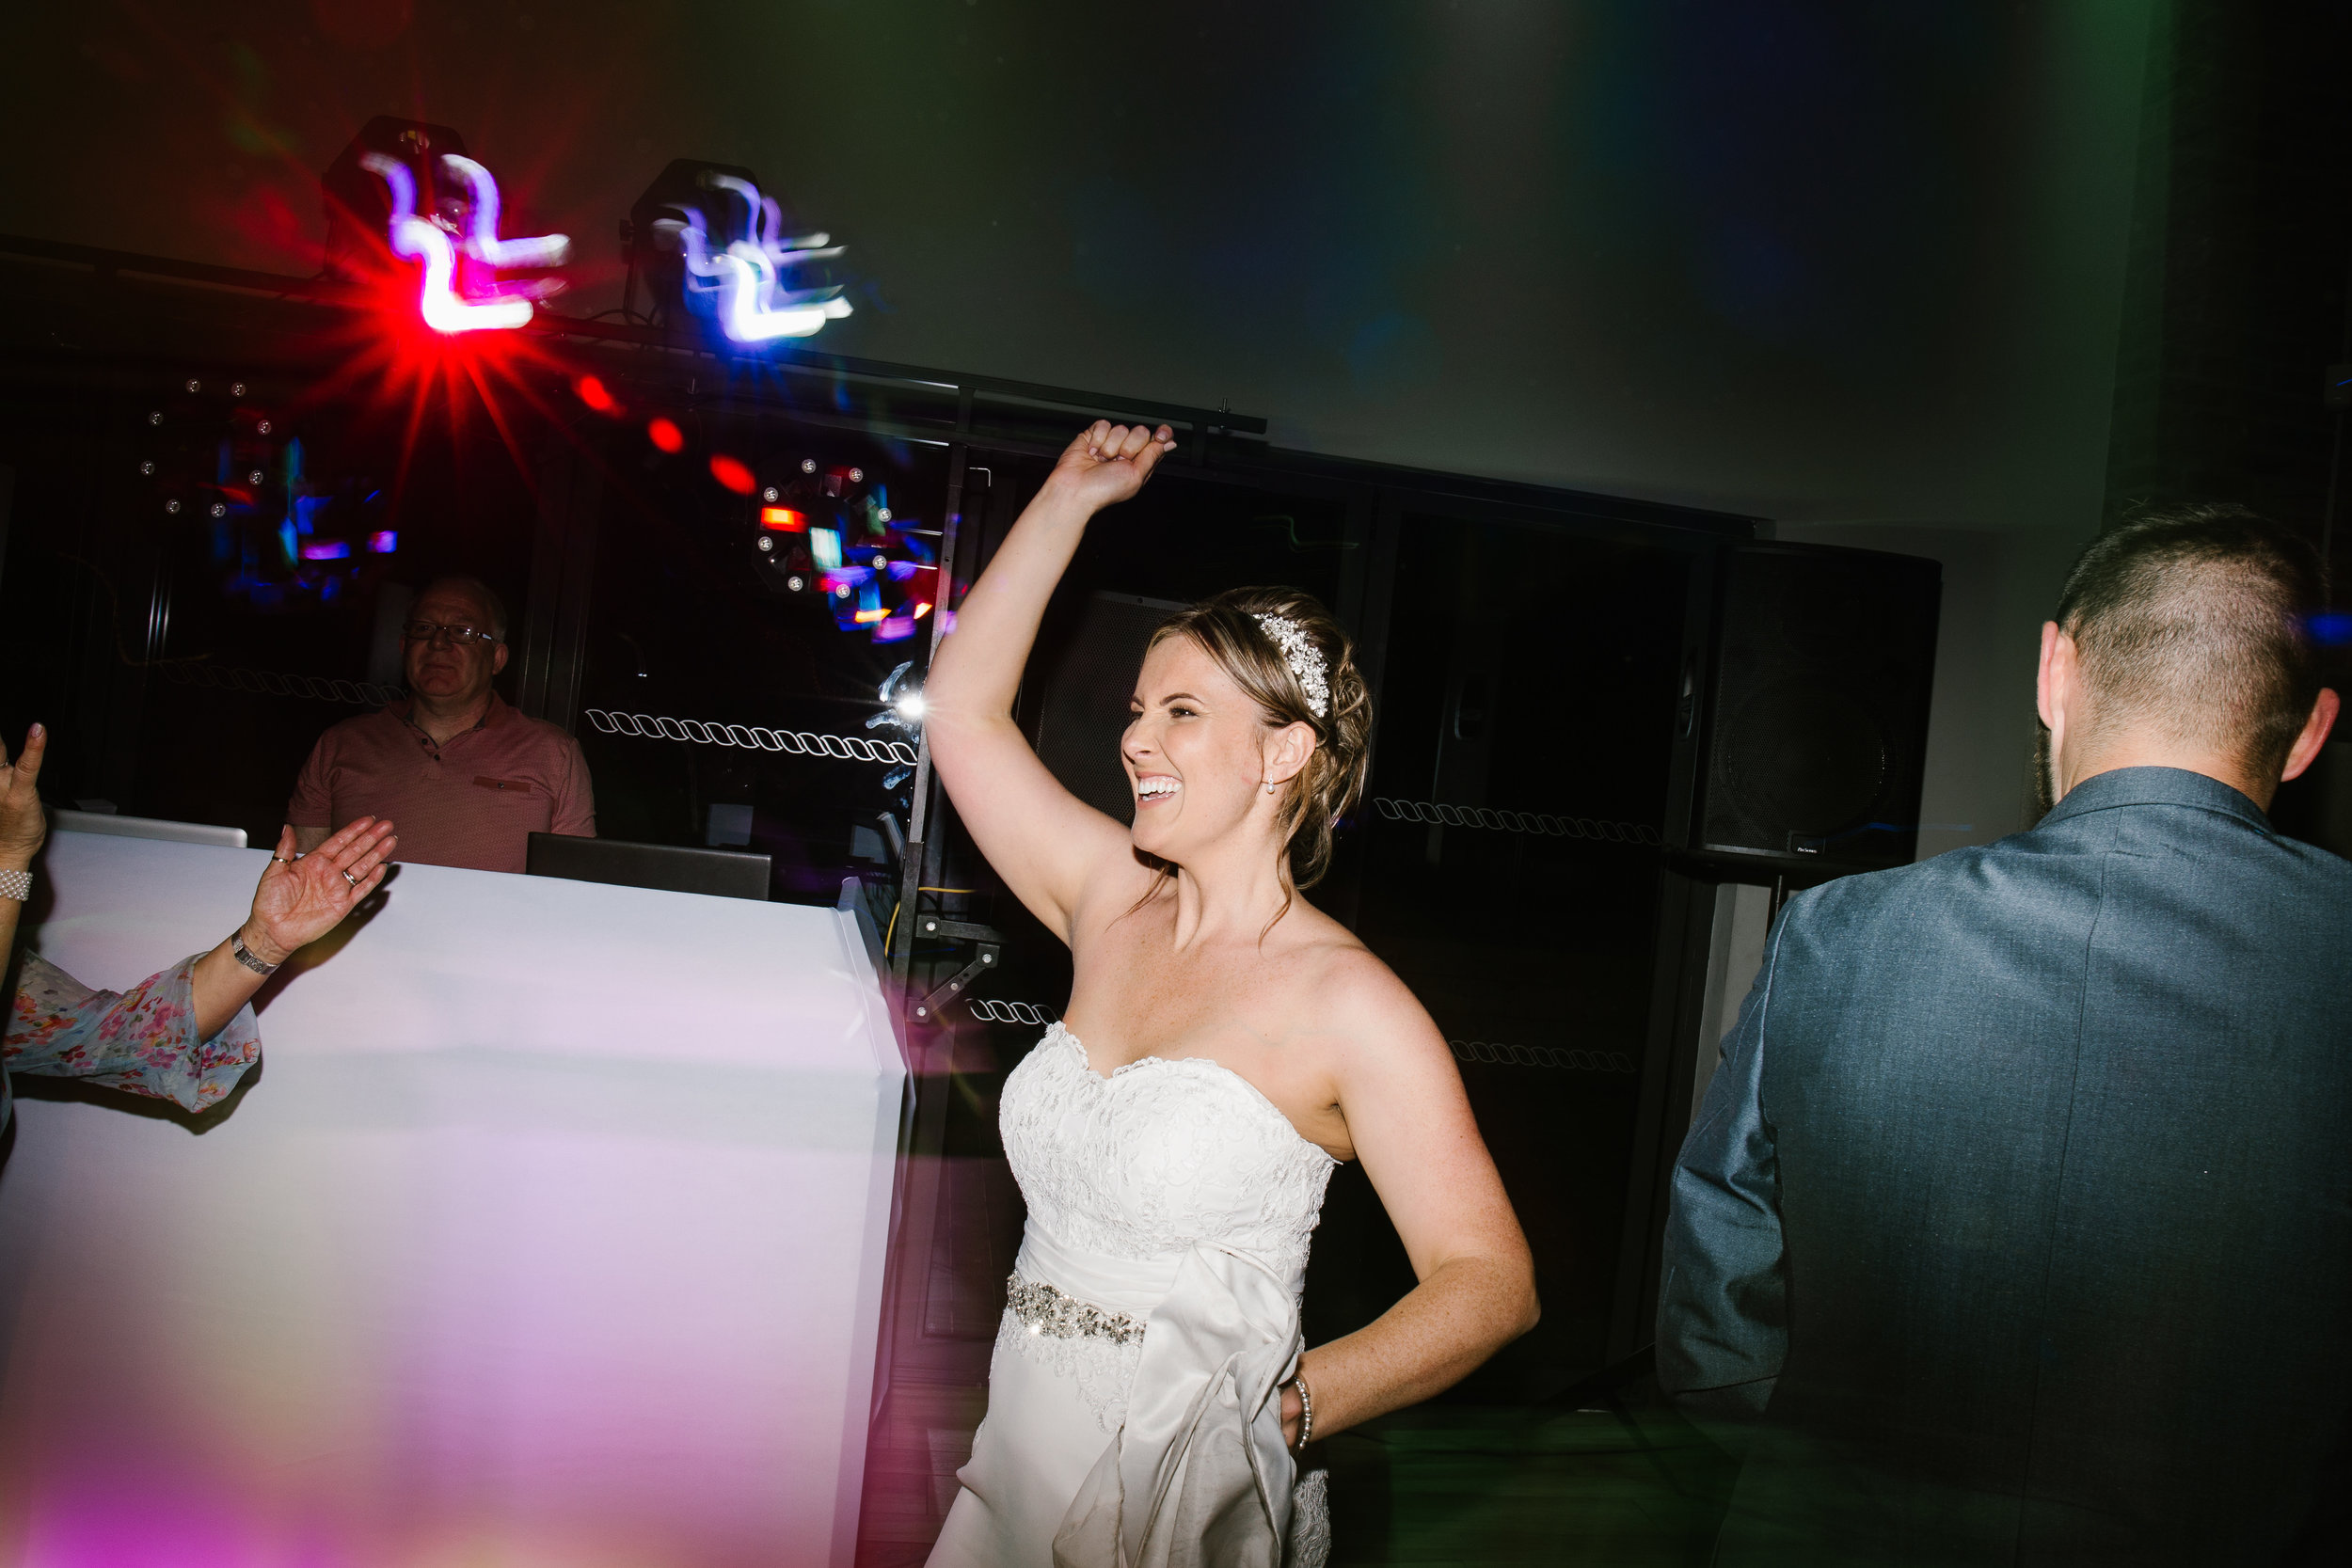 bride dancing to steps on the party of her wedding night